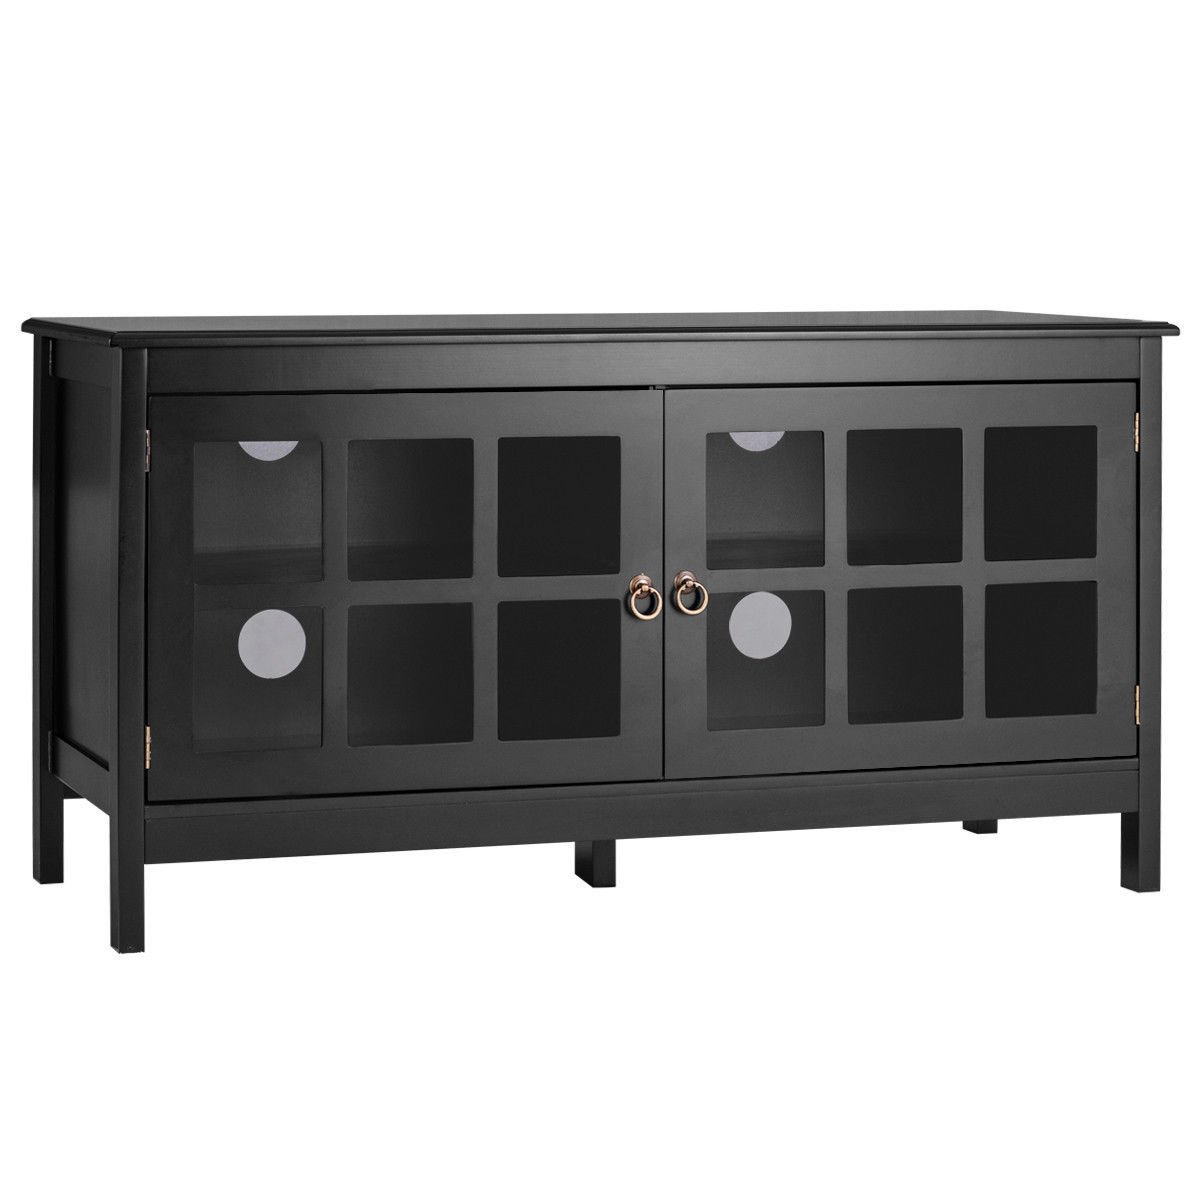 "TV Stand 50"" with 2 Doors Modern Storage Console Entertainment Center Wood Black by Iramaix"